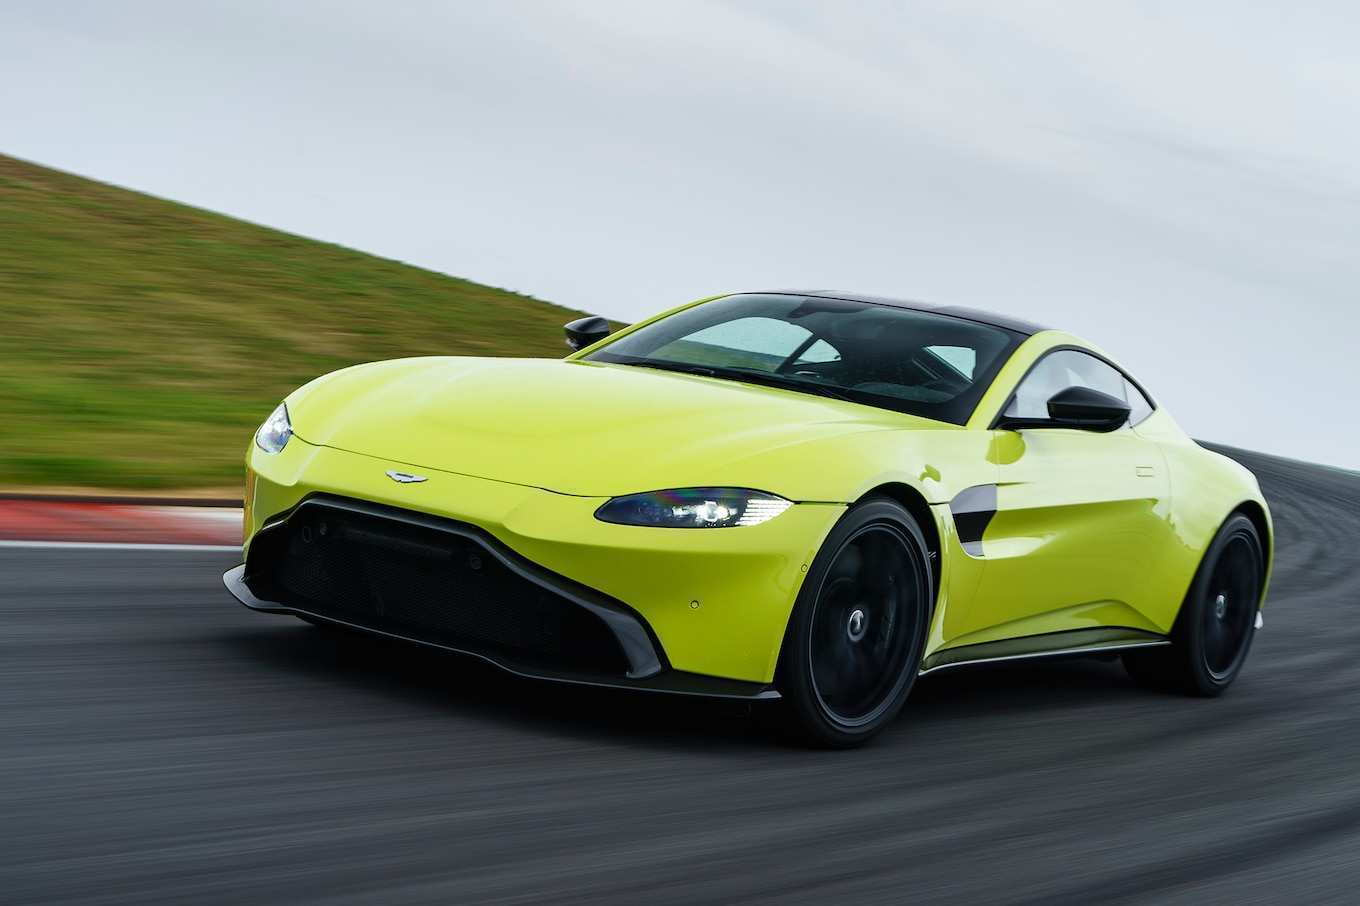 44 Great 2019 Aston Martin Vantage Exterior and Interior by 2019 Aston Martin Vantage